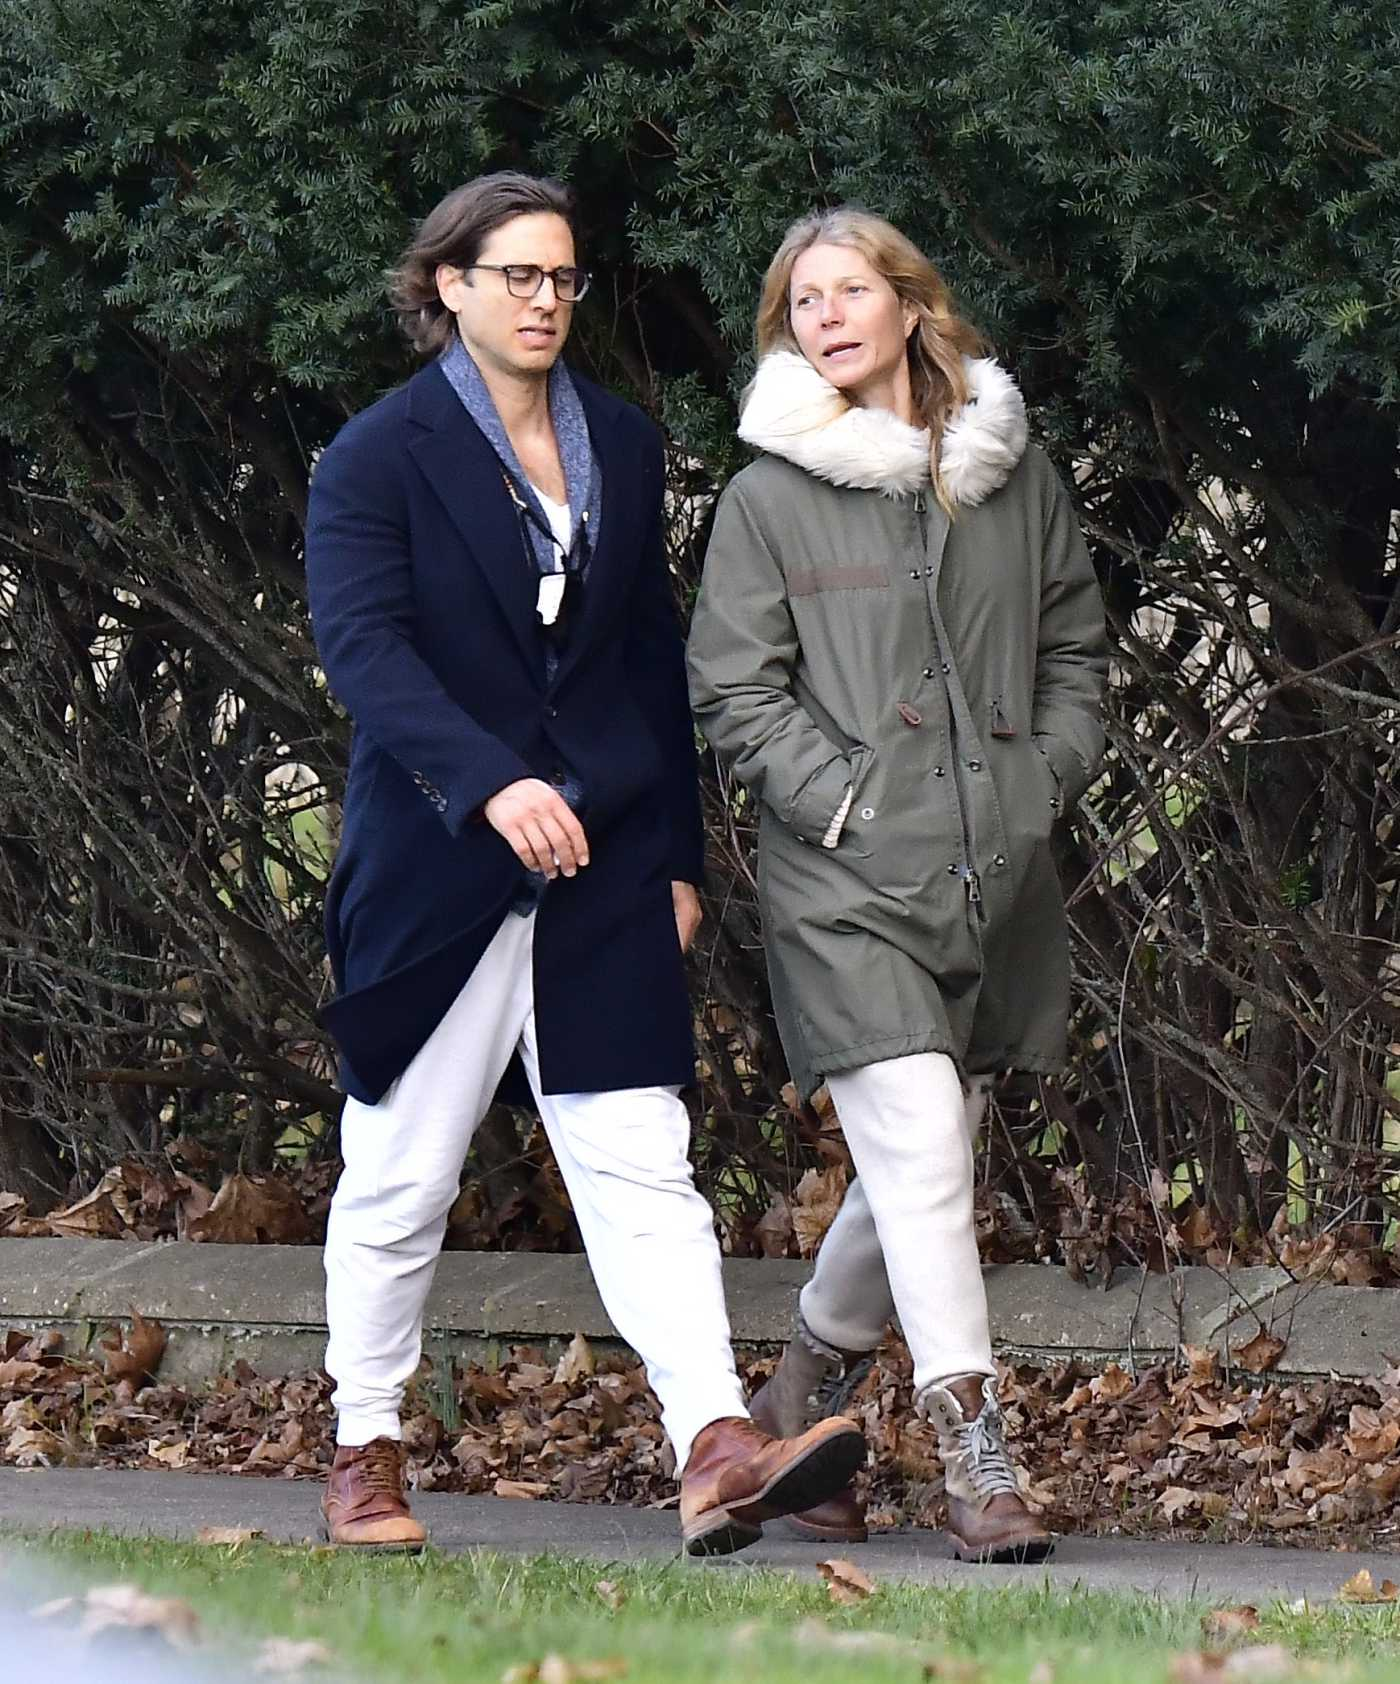 Gwyneth Paltrow in a White Sweatpants Was Spotted Out with Her Husband Brad Falchuk in the Hamptons, New York 11/29/2020